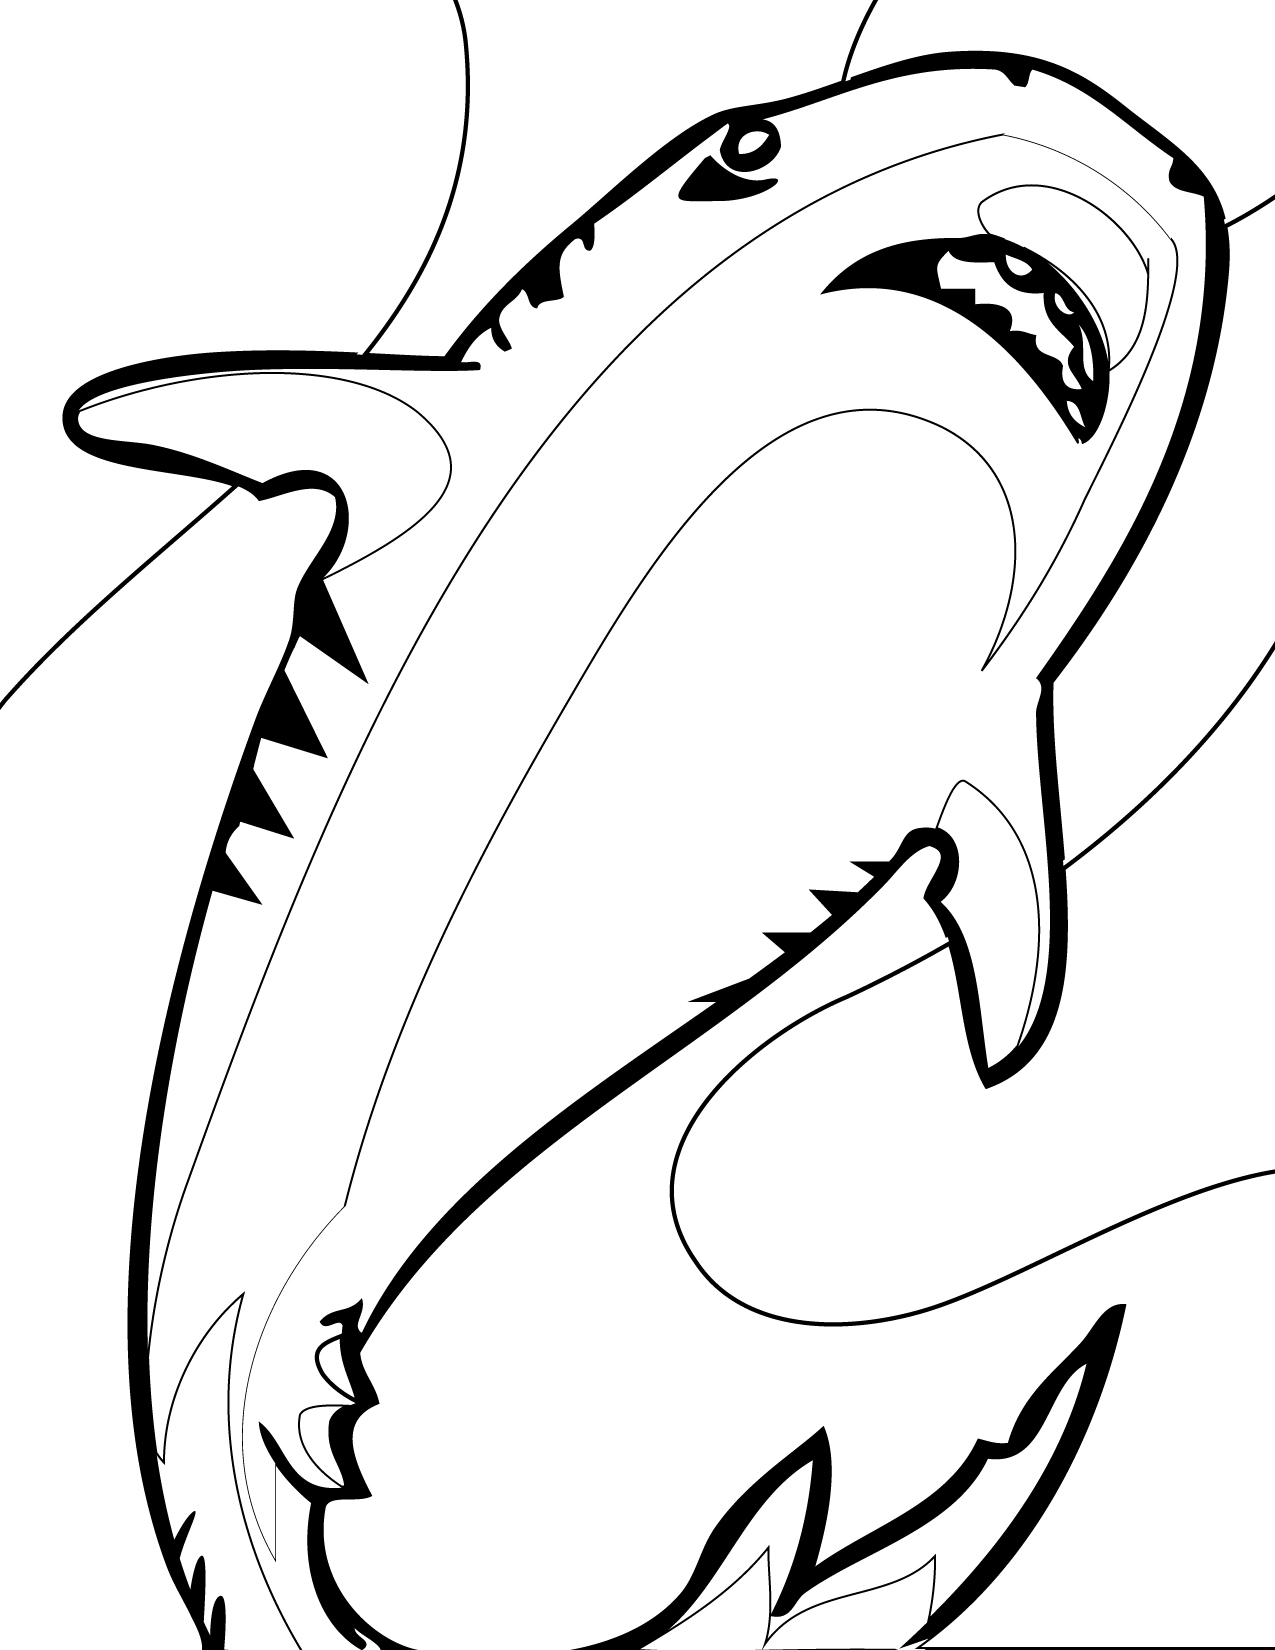 colouring pages of sharks free printable shark coloring pages for kids of sharks colouring pages